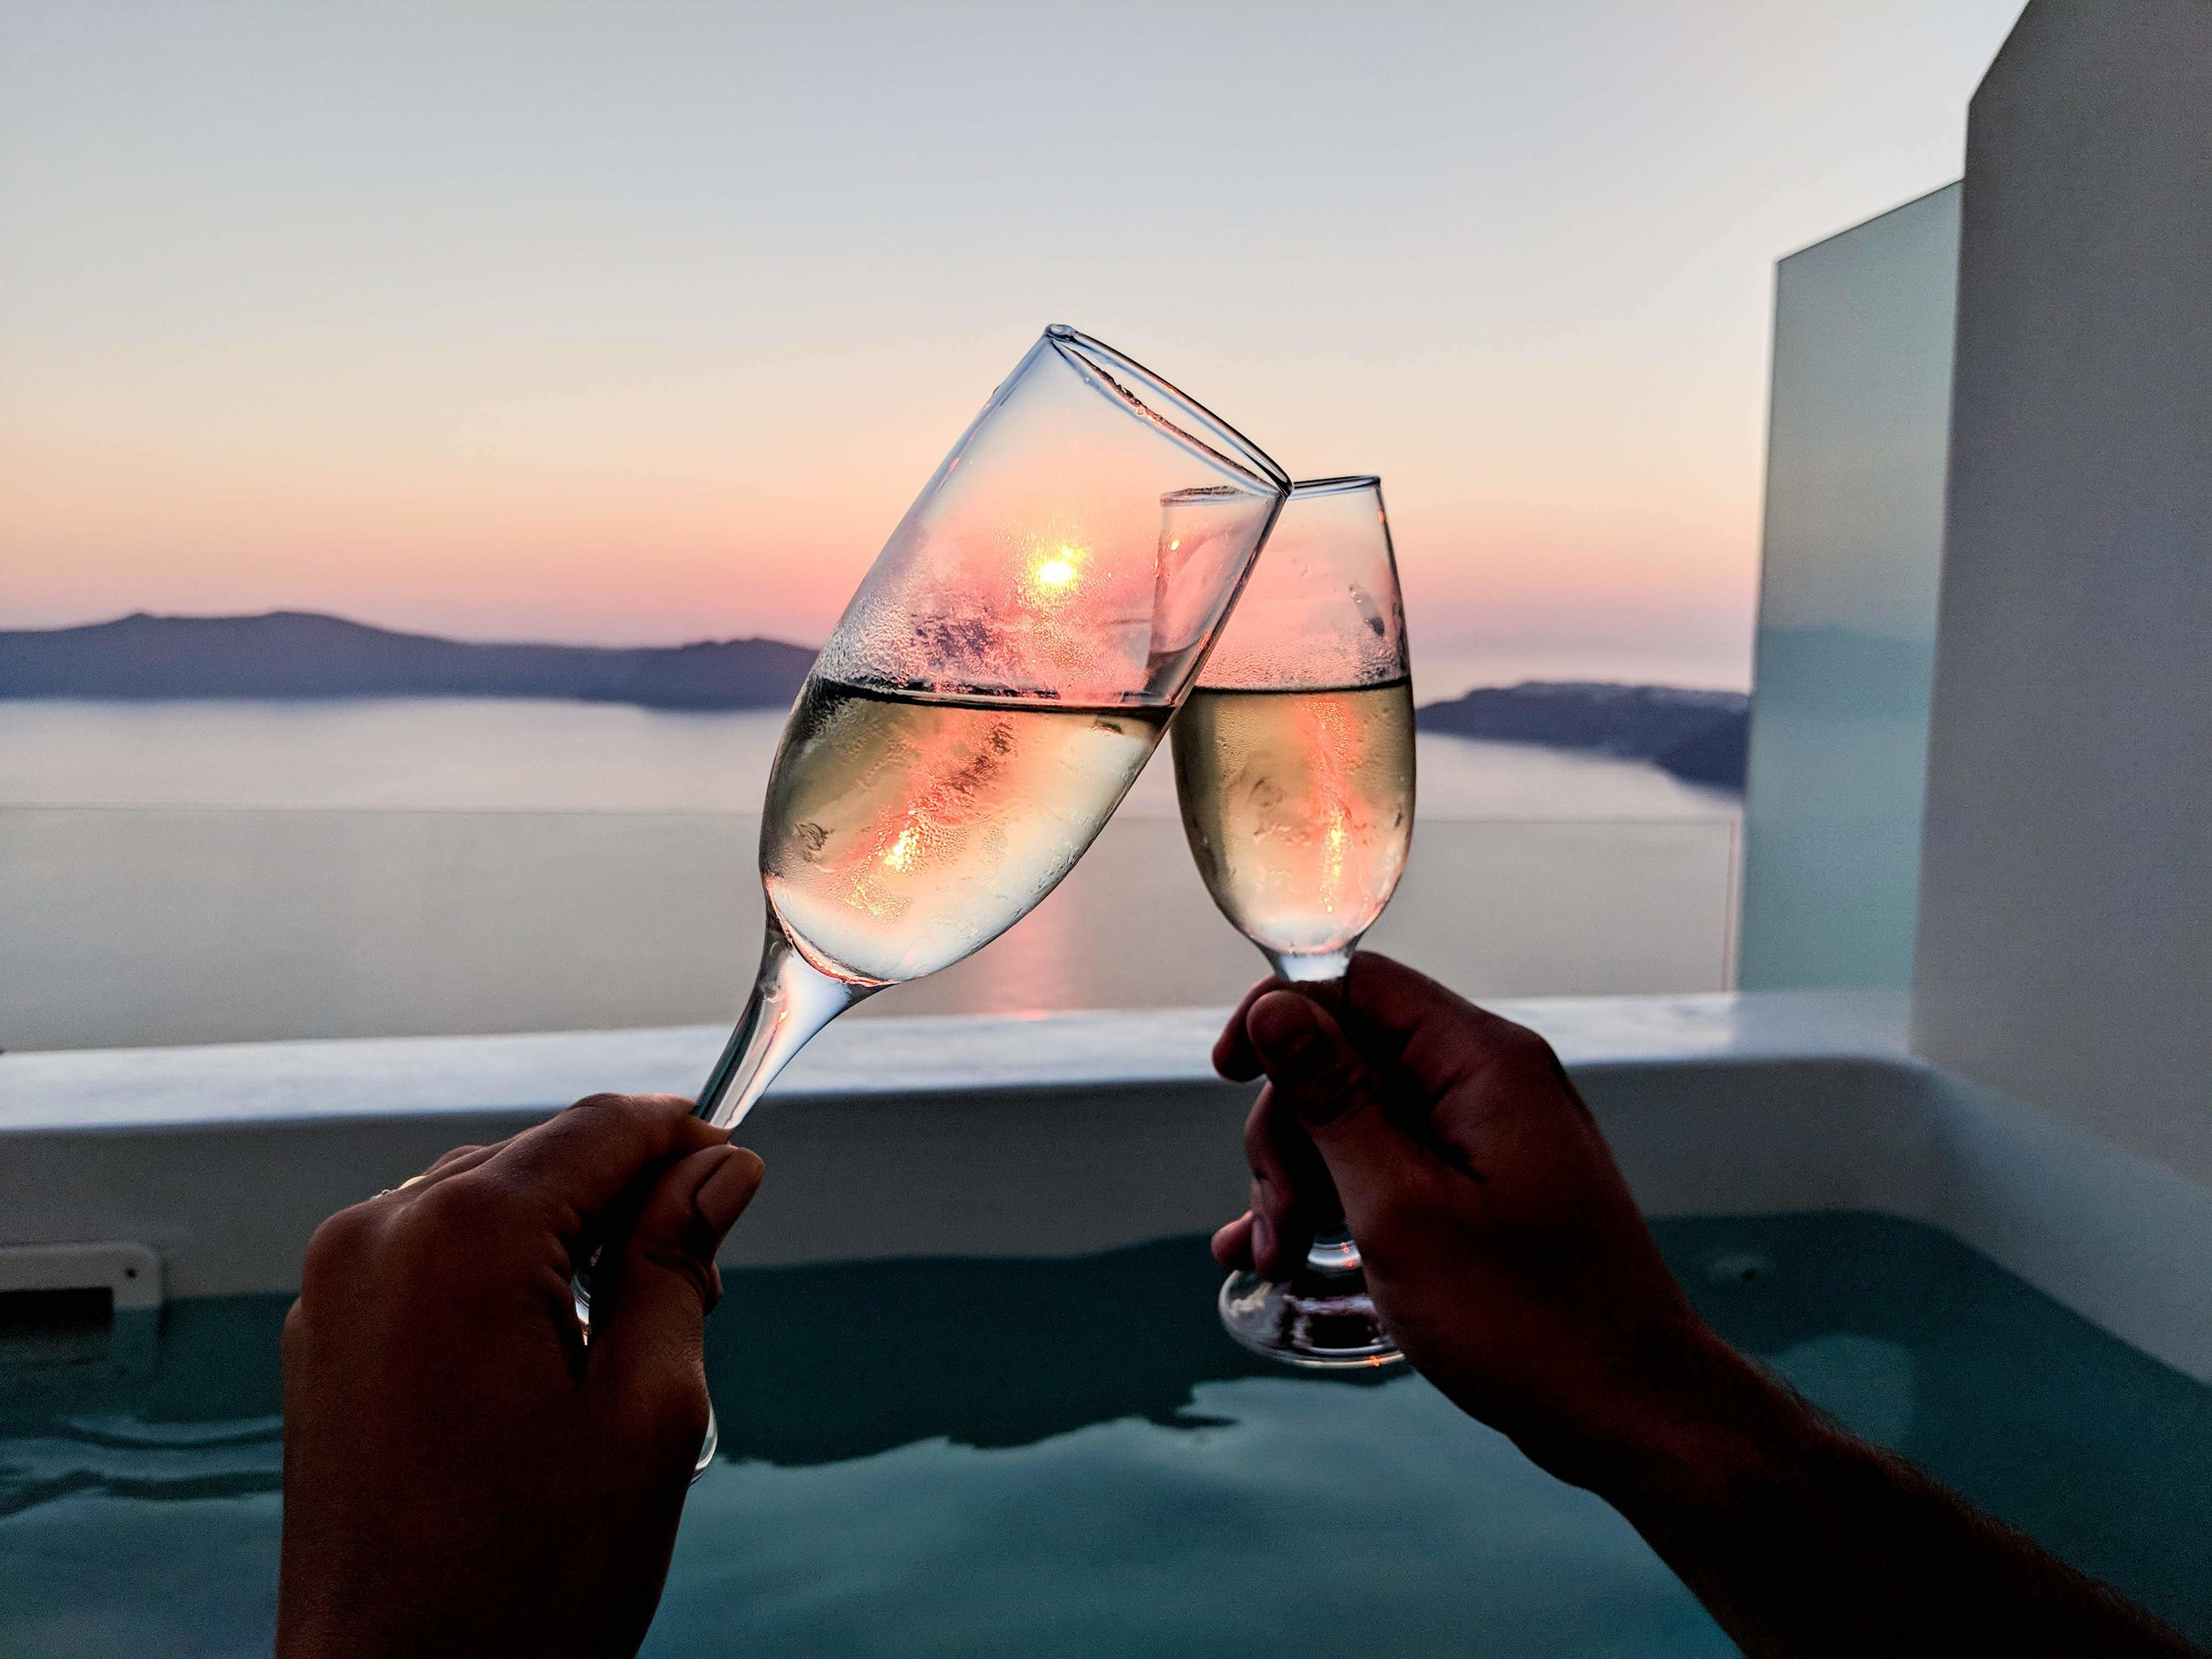 Always Looking For The Magic - Nicole Toland - Santorini Greece Honeymoon Trip